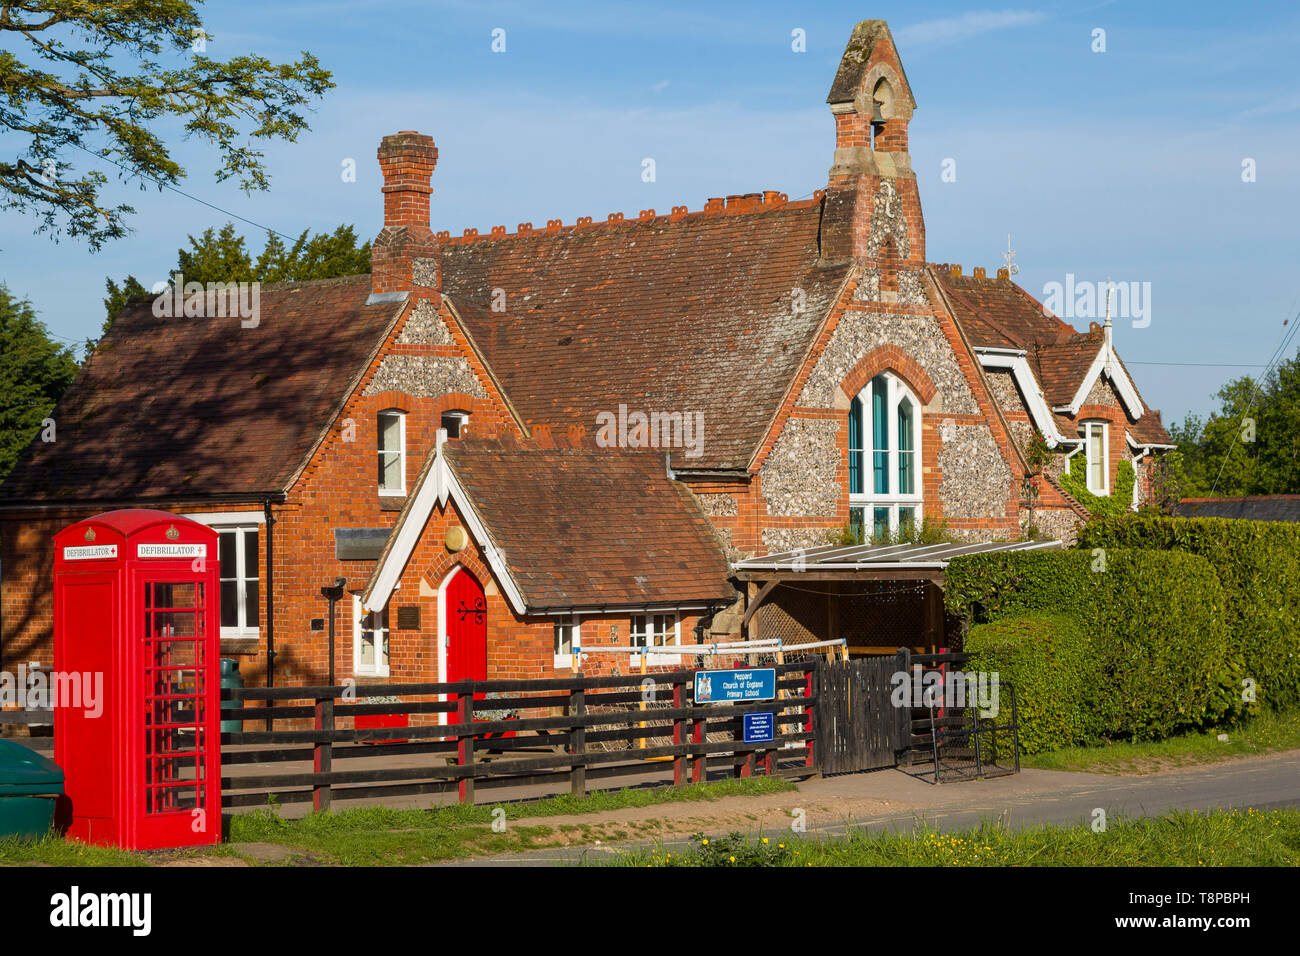 Traditional Victorian brick and flint school building, still in use at Peppard, Oxfordshire with a red telephone box converted for a defibrillator - Stock Image